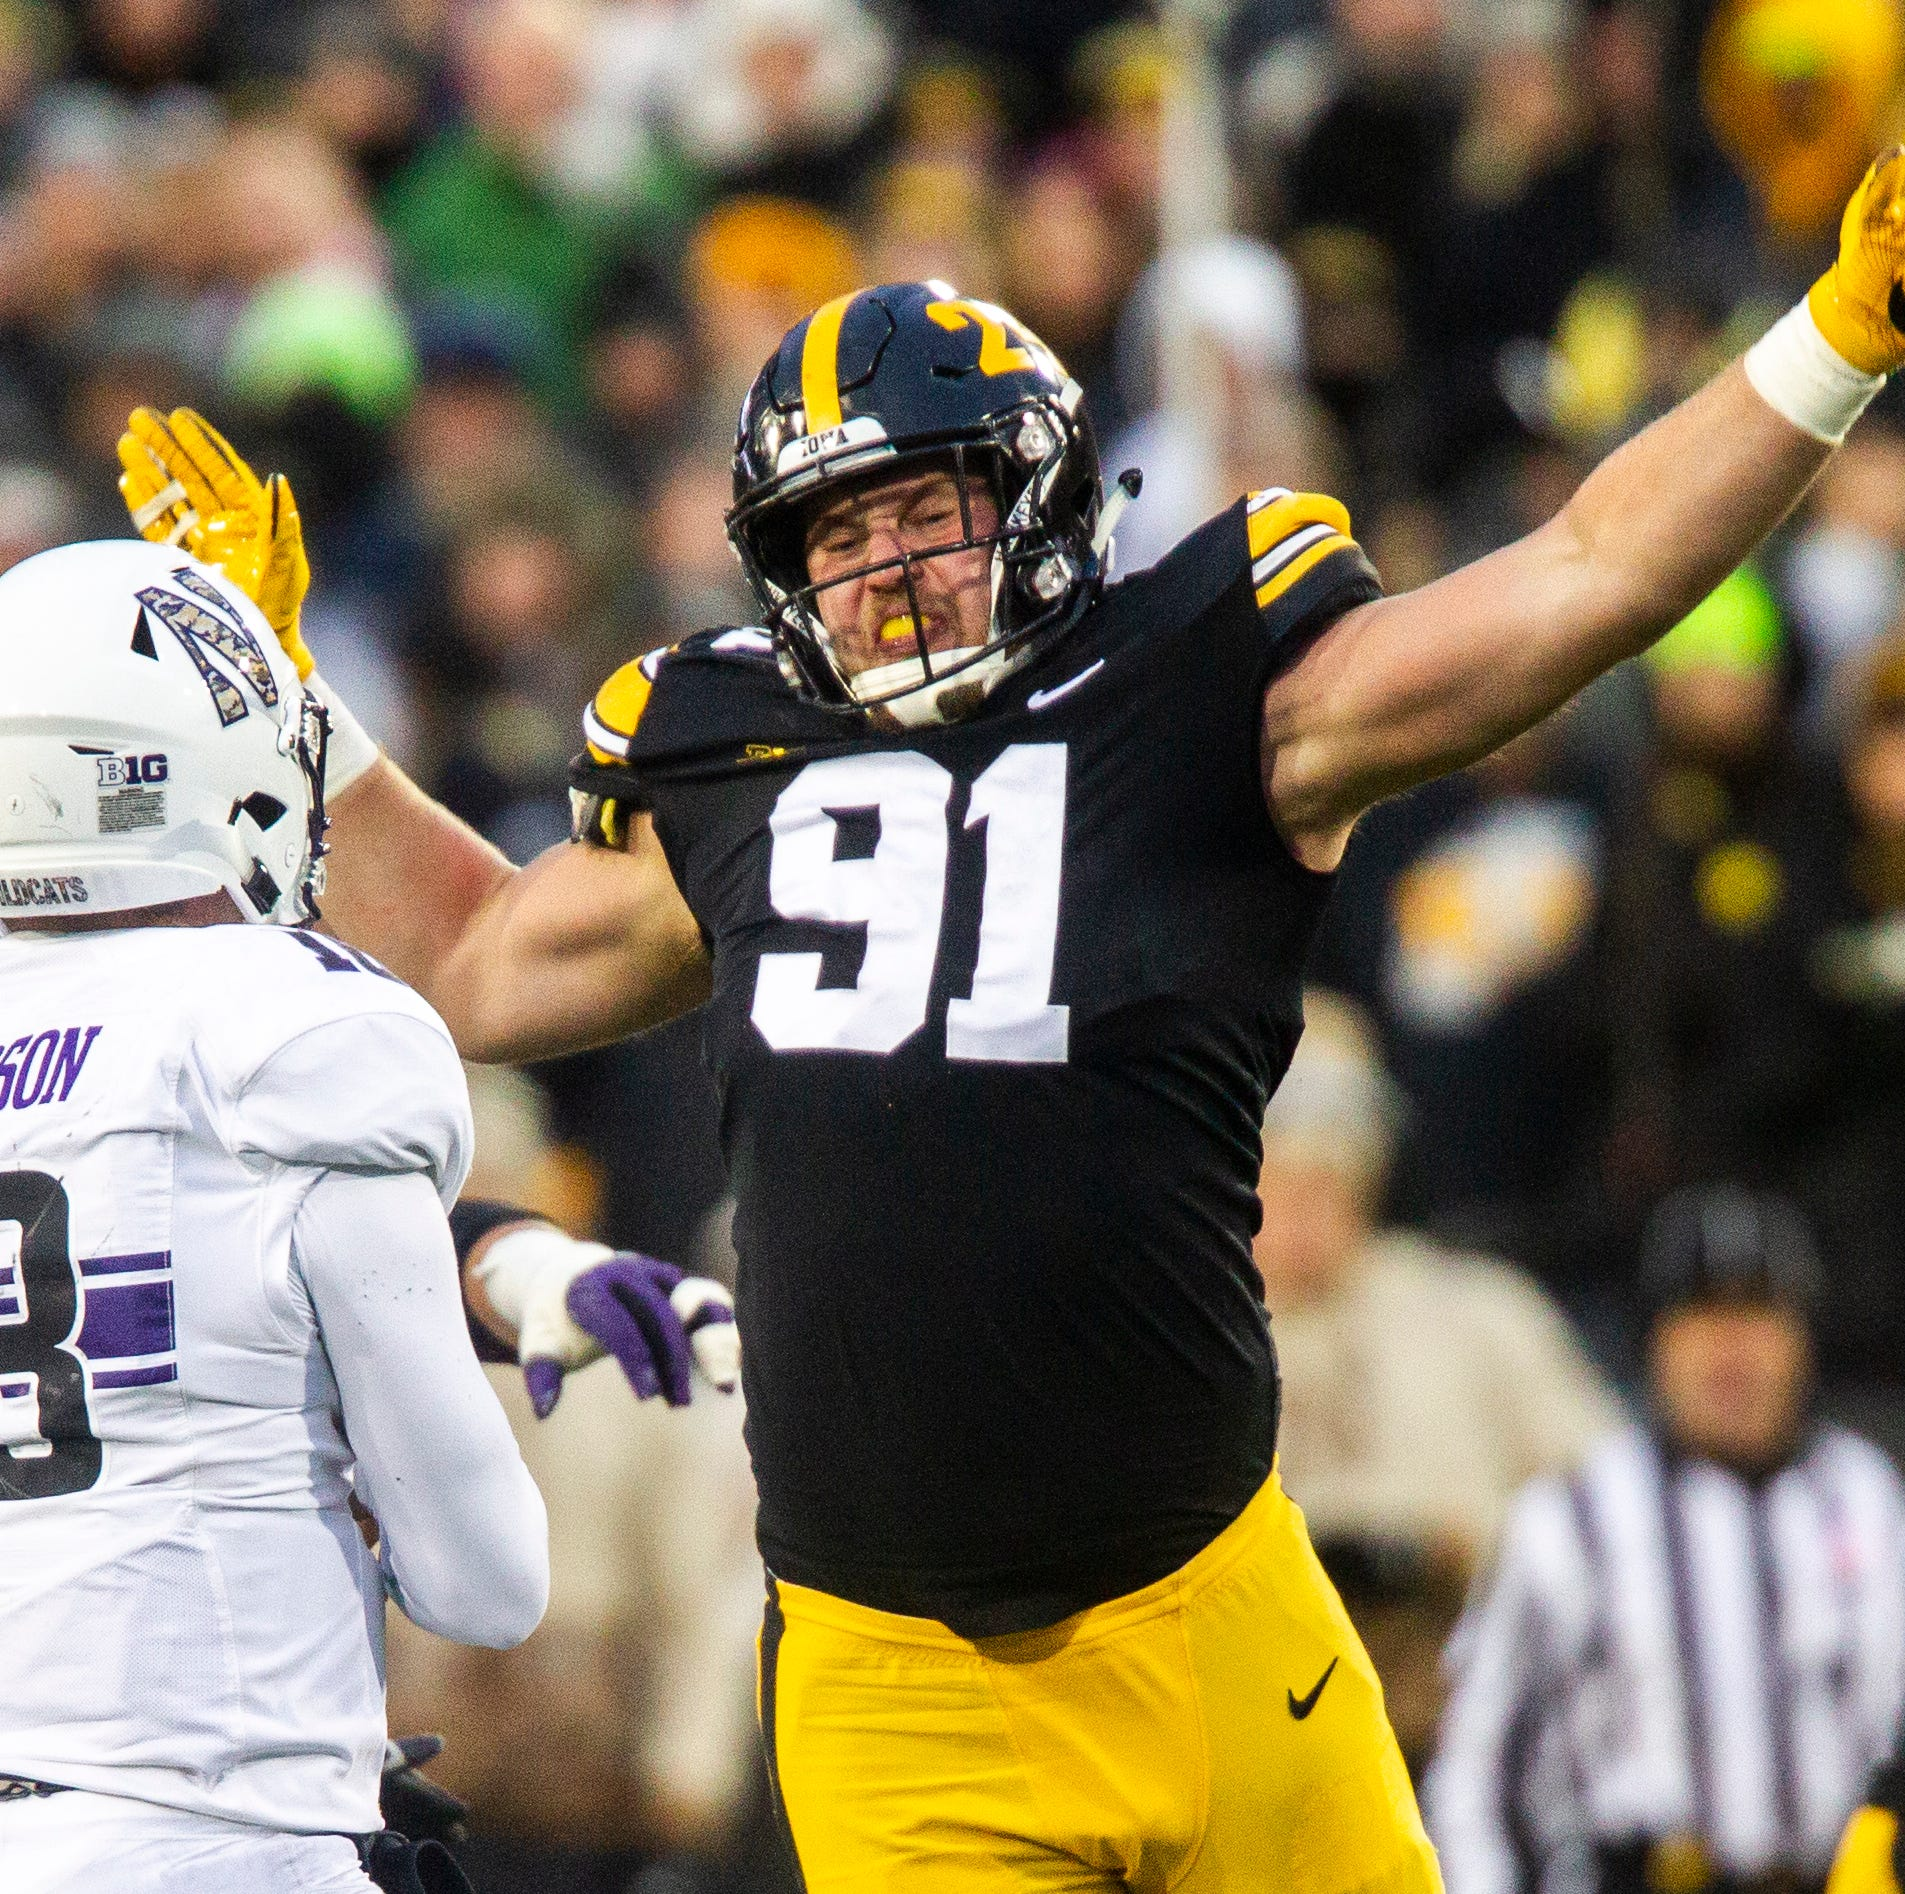 Iowa defensive lineman Brady Reiff (91) gets his hands up to attempt to block a pass during a Big Ten Conference football game on Saturday, Nov. 10, 2018, at Kinnick Stadium in Iowa City.